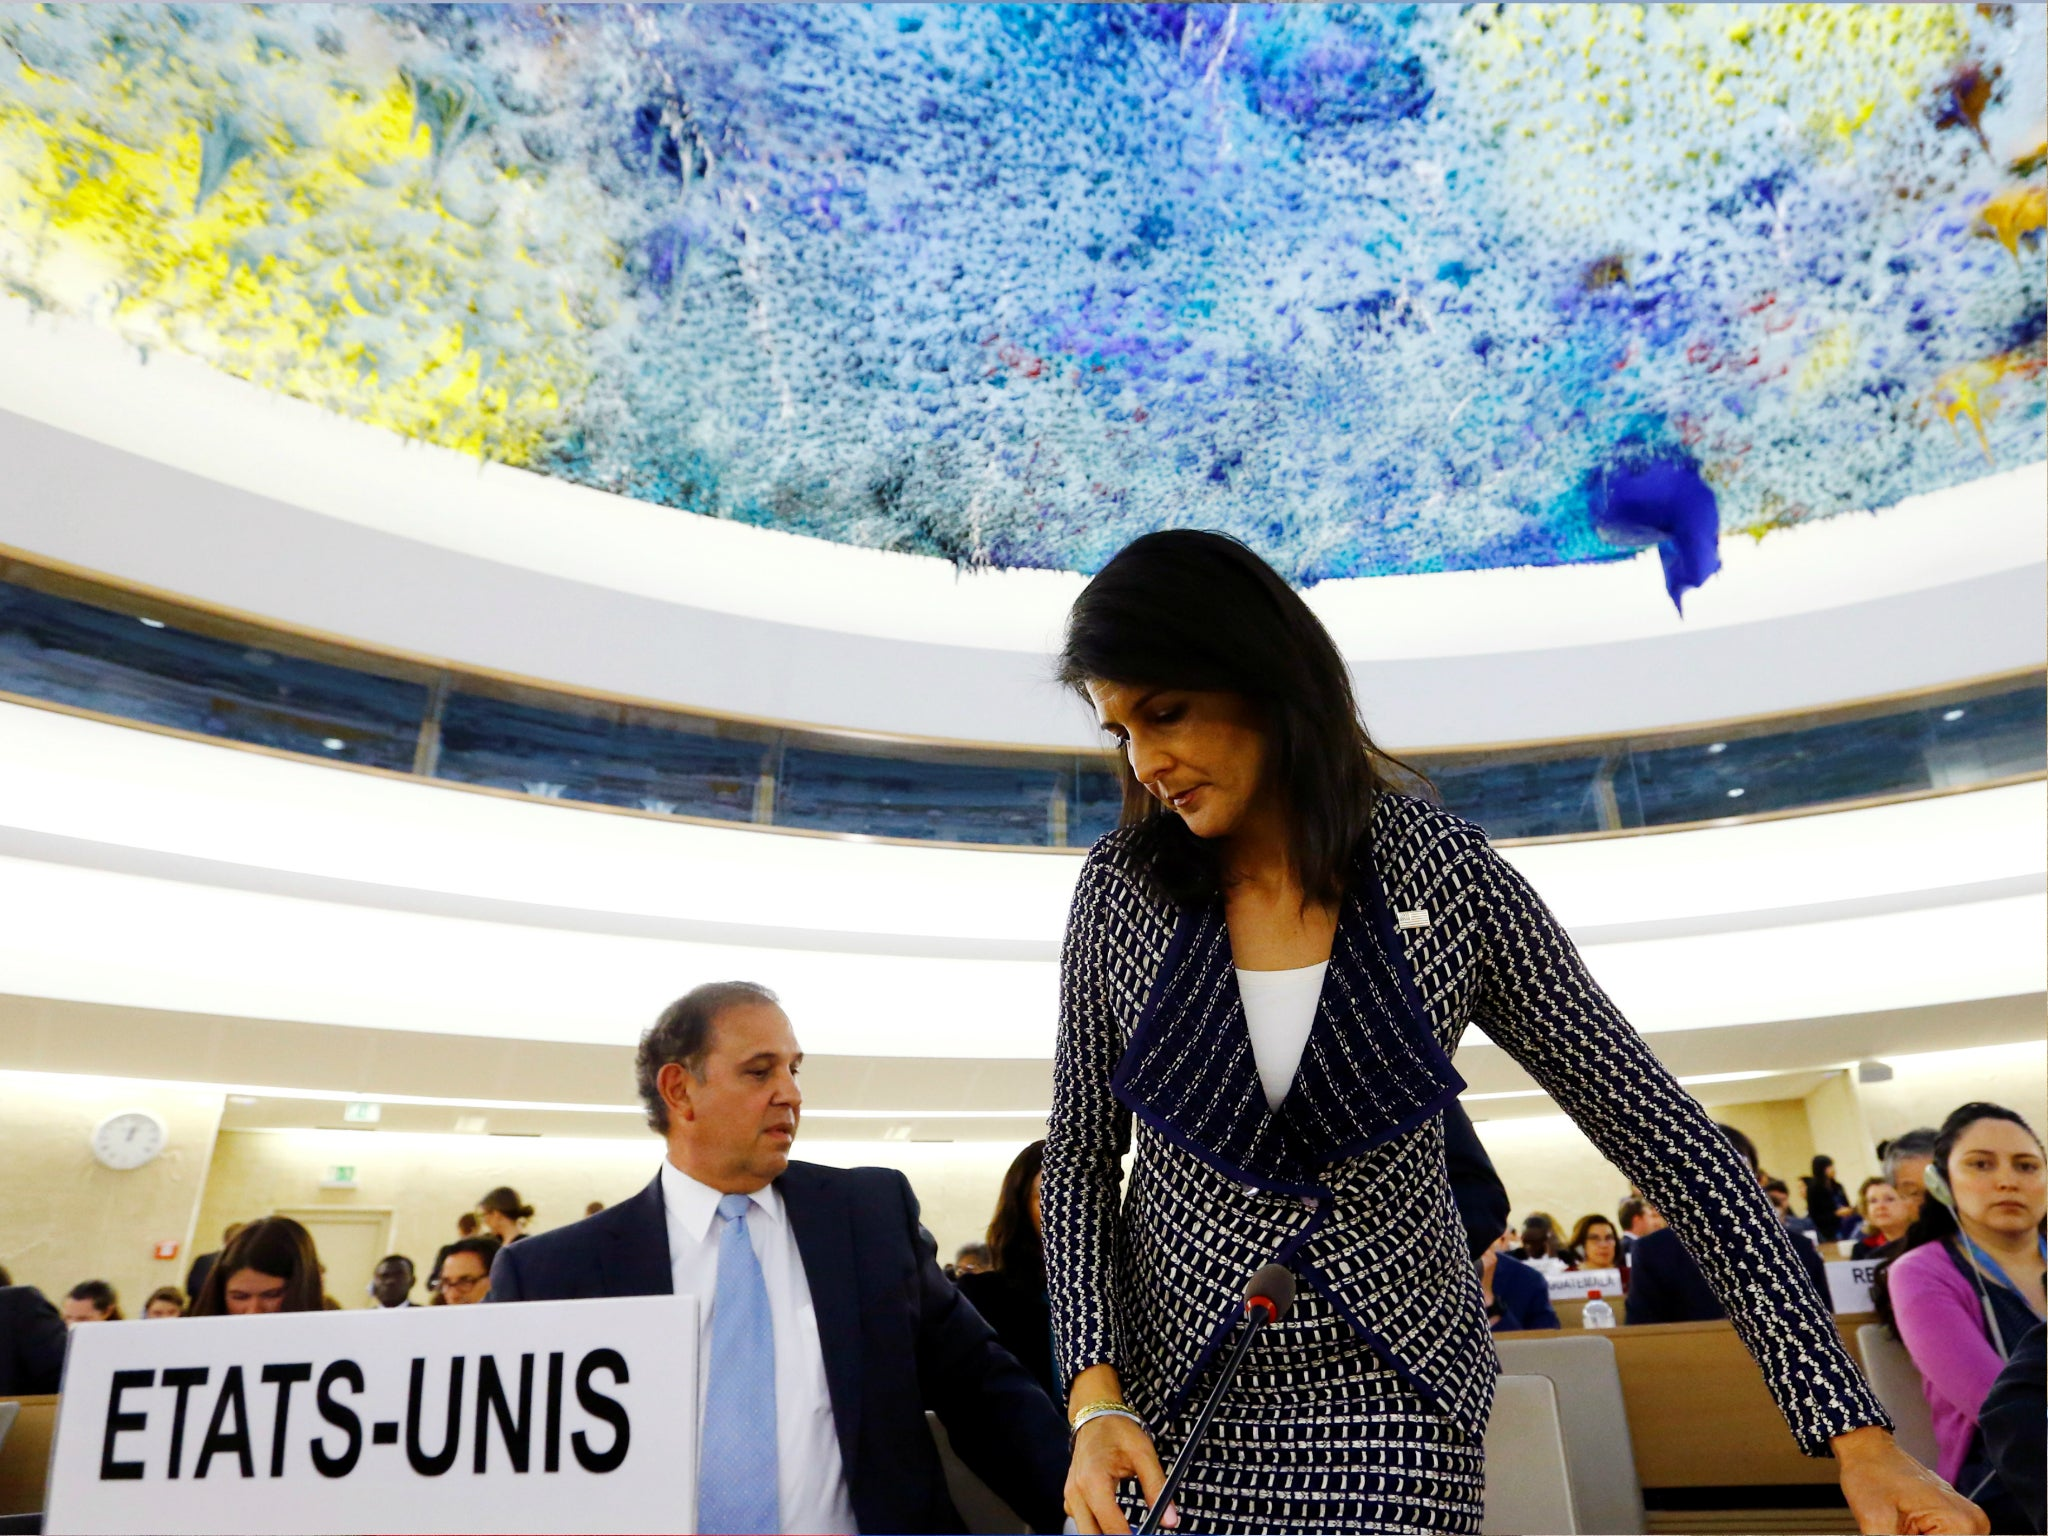 Trump administration will withdraw US from UN human rights council, report says